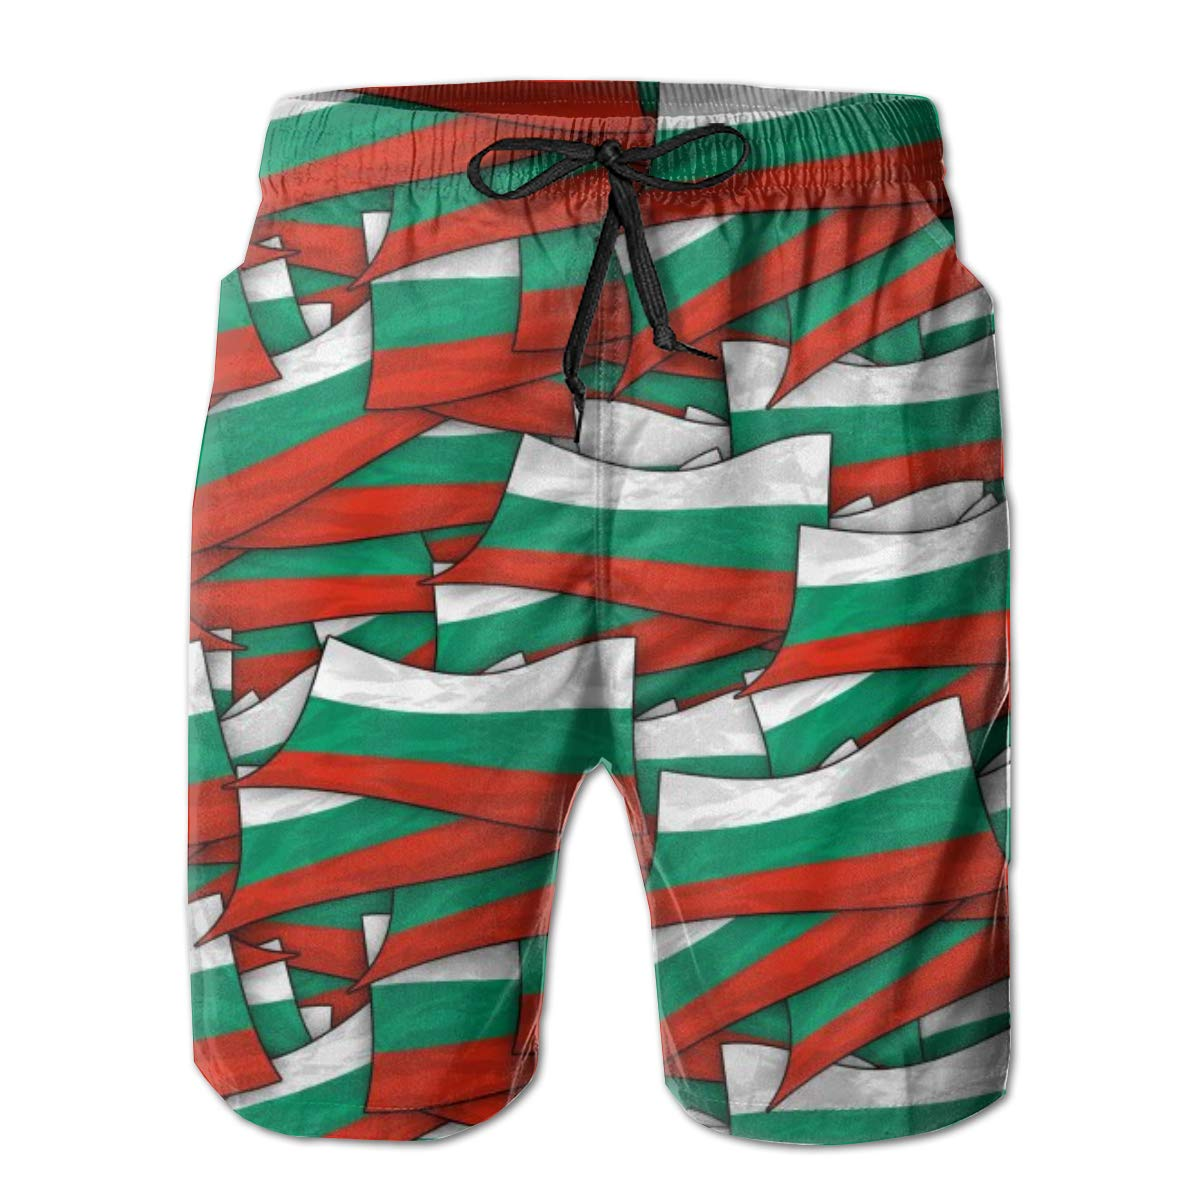 Mens Swim Trunks Quick Dry Summer Holiday Beach Shorts with Mesh Lining Bulgaria Flag Wave Collage Beachwear